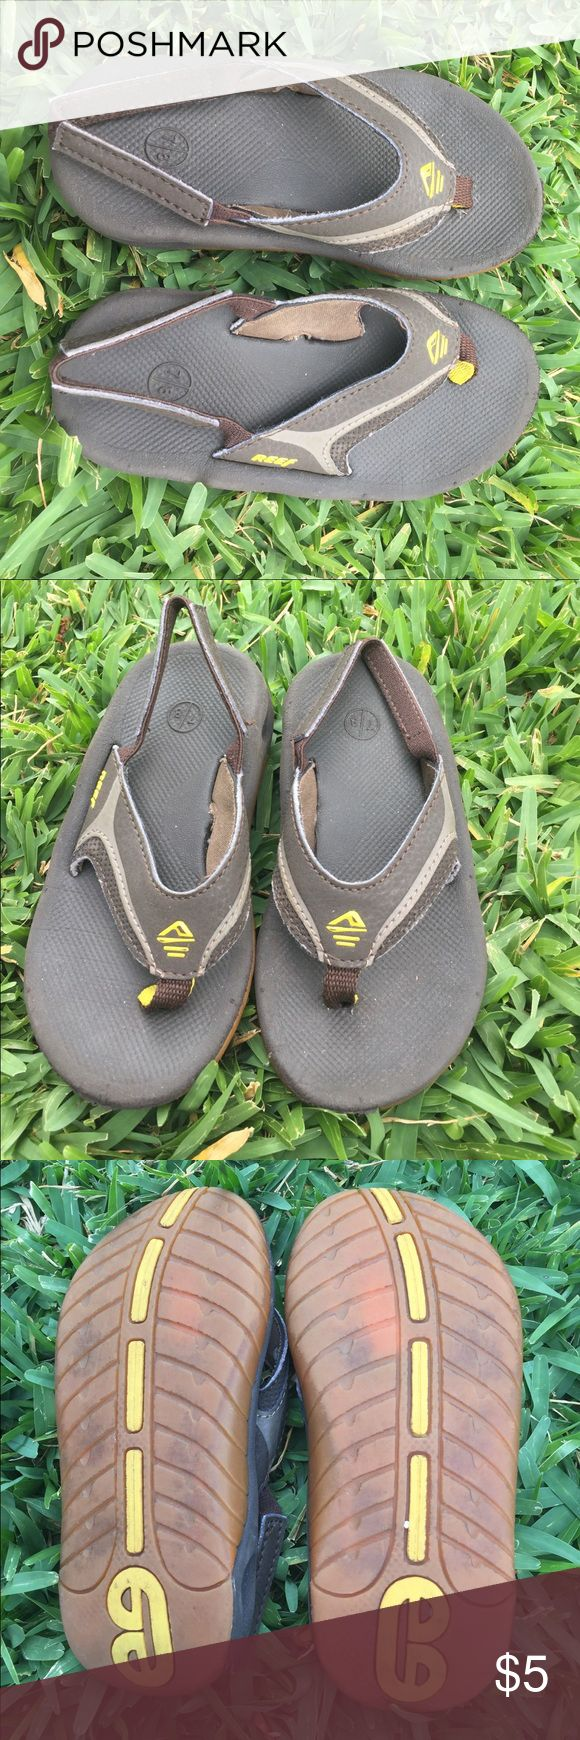 Reef Slippers (flip flops) with Backstrap Shades of brown with a pop of yellow.  These are in good used condition.  Price final unless bundled. Please bundle and make an offer. Reef Shoes Sandals & Flip Flops